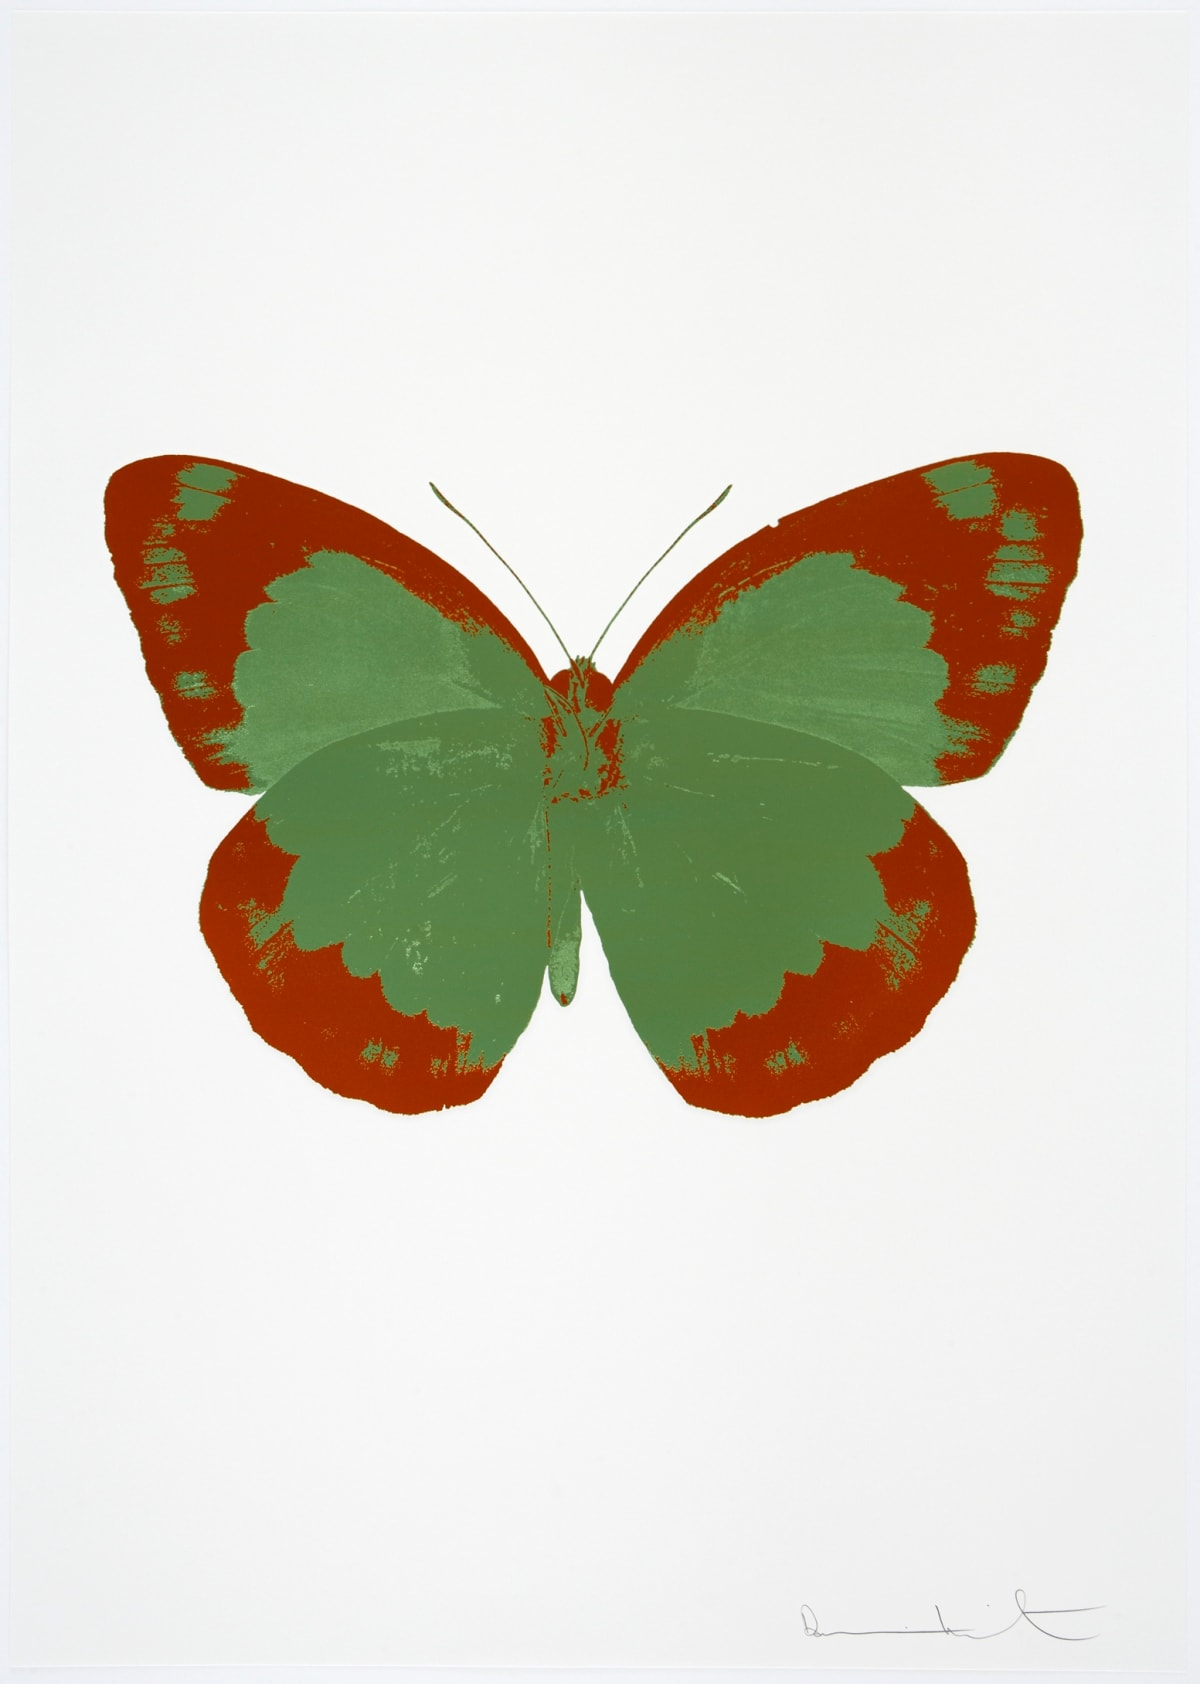 Damien Hirst The Souls II - Leaf Green/Prairie Copper/Blind Impression, 2010 2 colour foil block on 300gsm Arches 88 archival paper. Signed and numbered. Published by Paul Stolper and Other Criteria 72 x 51cm OC7835 / 658-18 Edition of 15